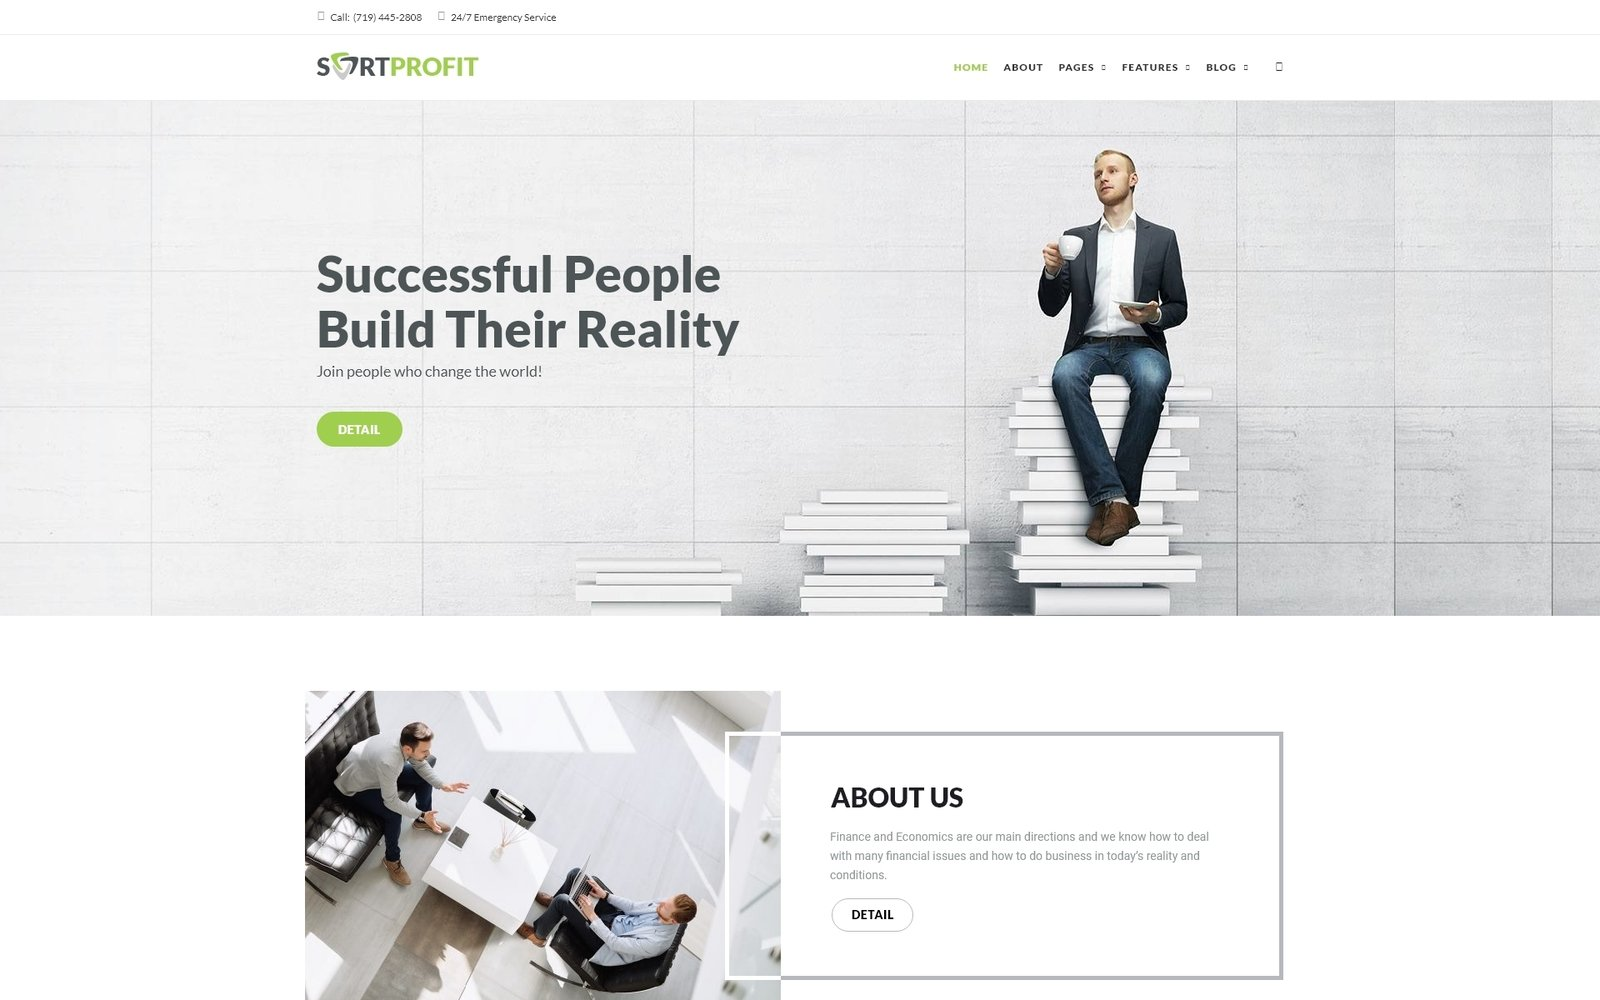 Responsywny motyw WordPress SortProfit - Business & Finance WordPress Theme #65113 - zrzut ekranu